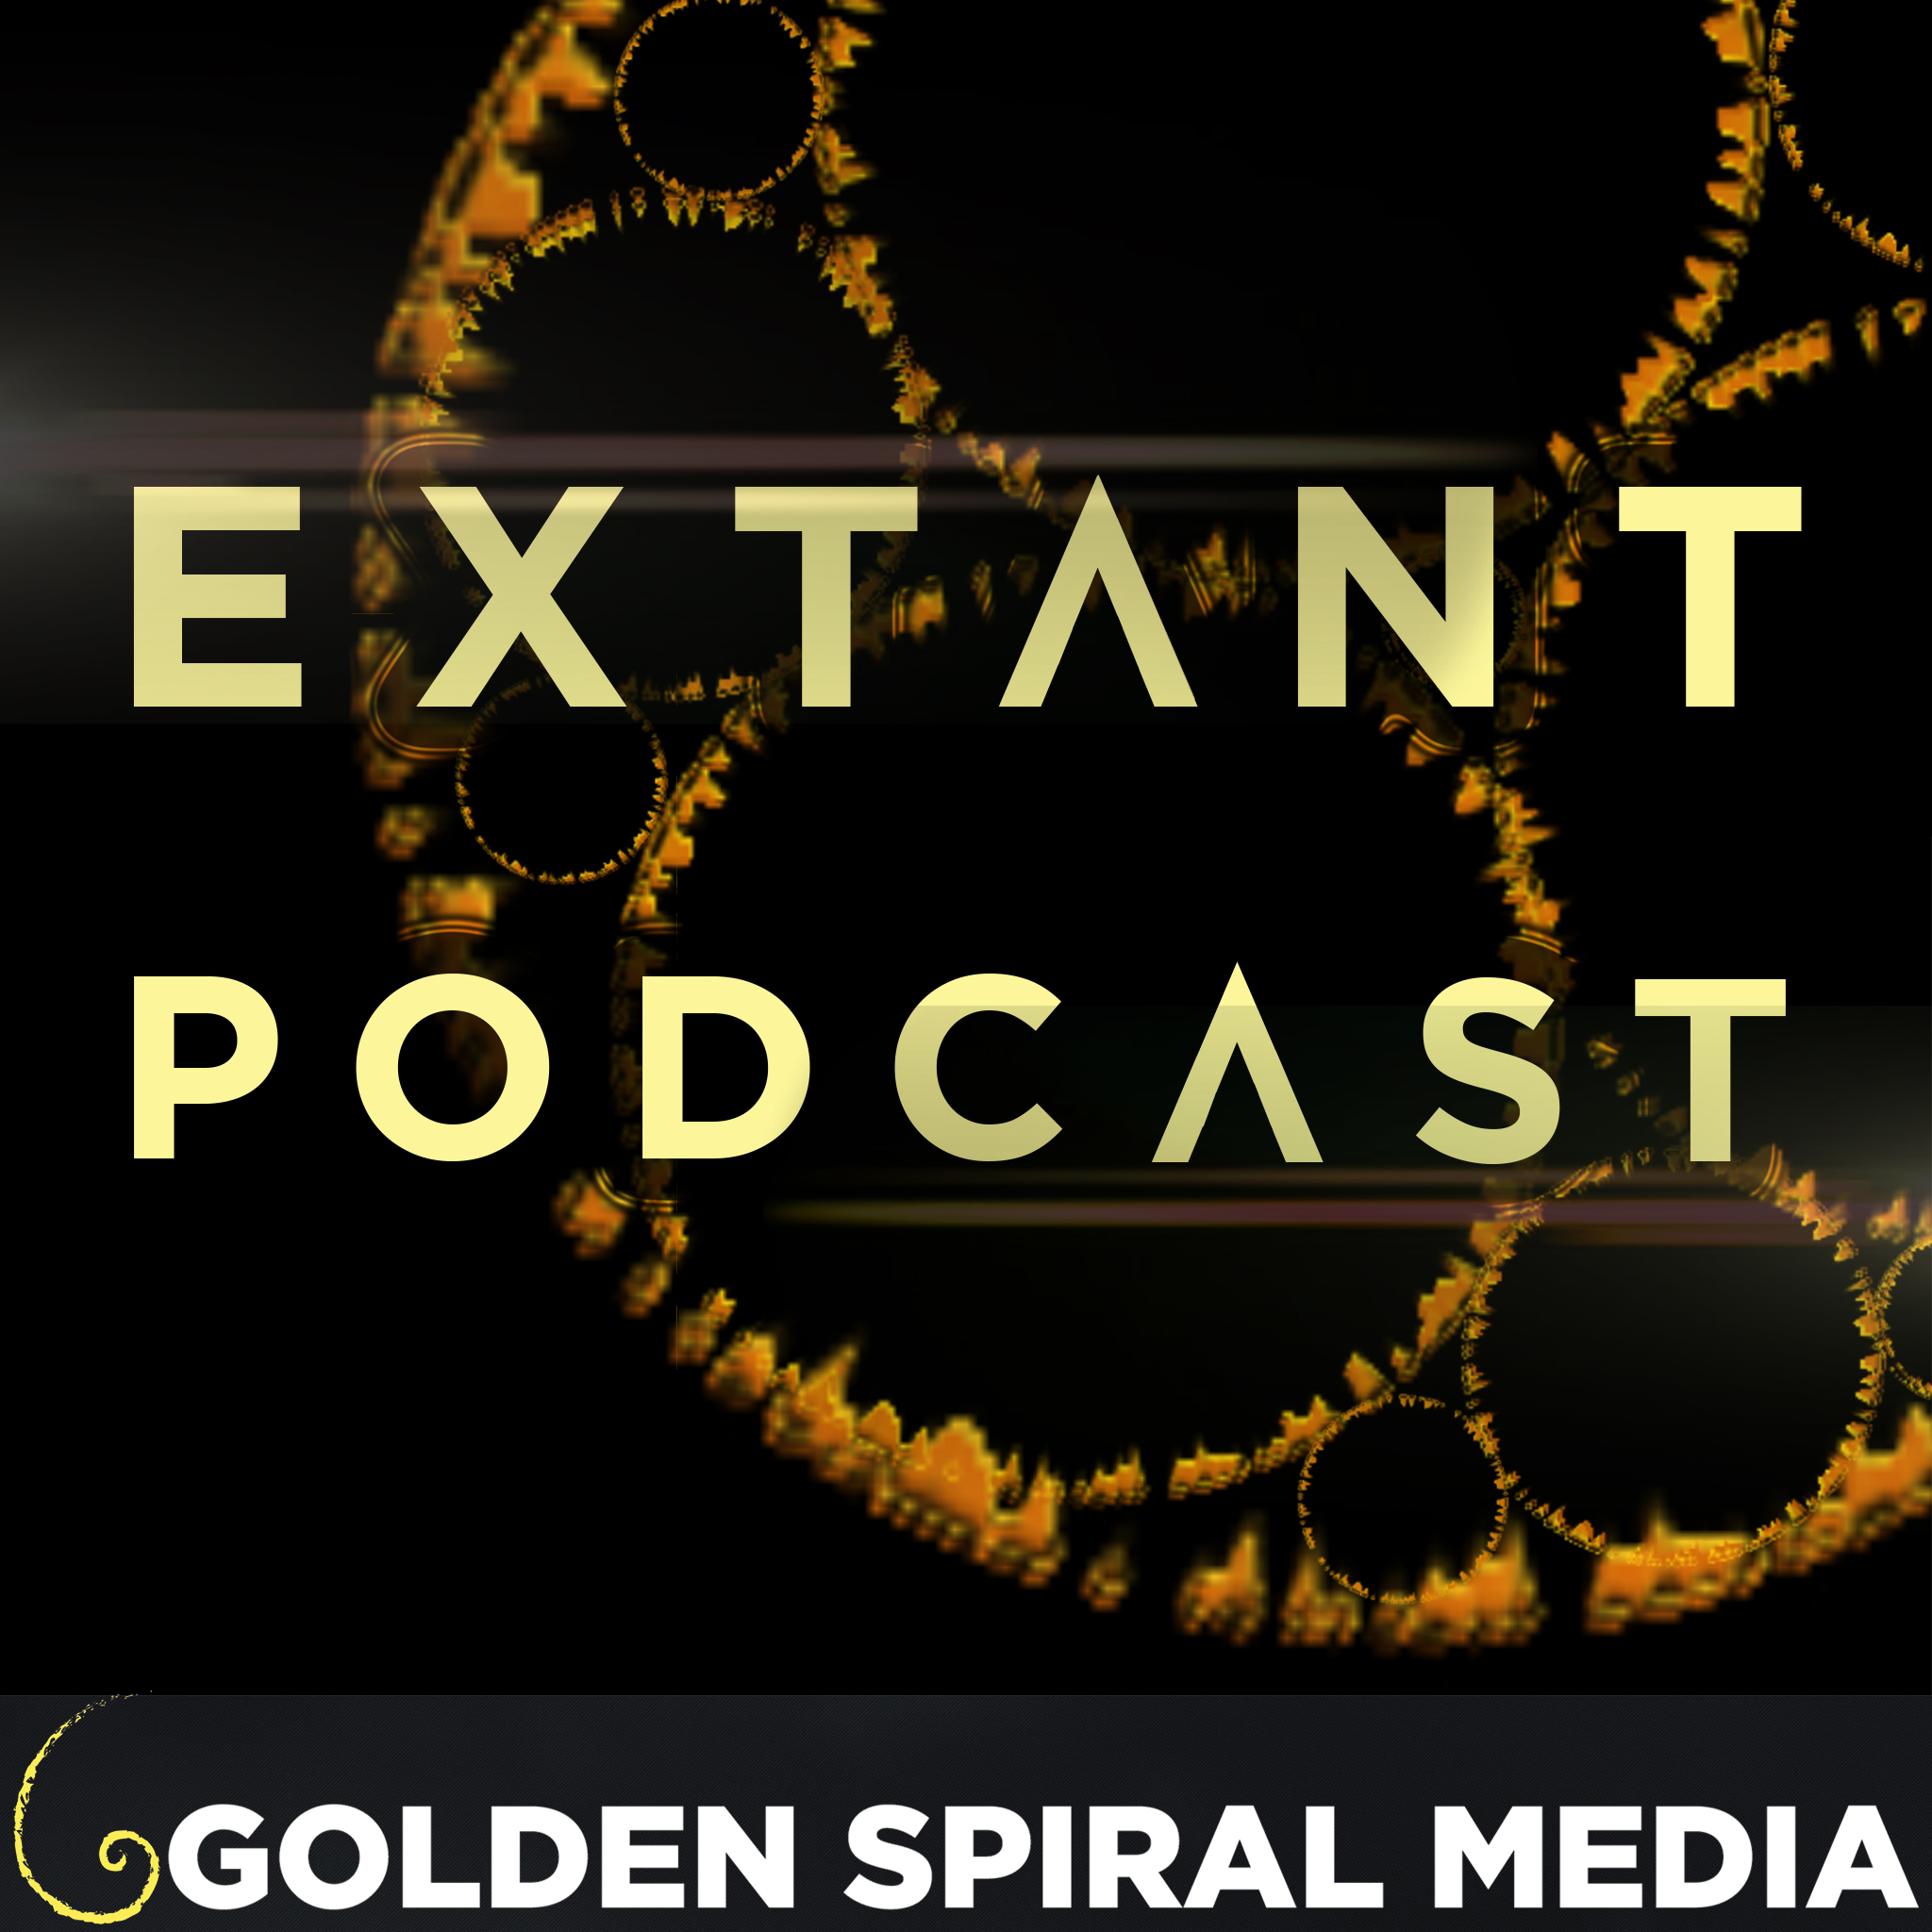 Extant Podcast